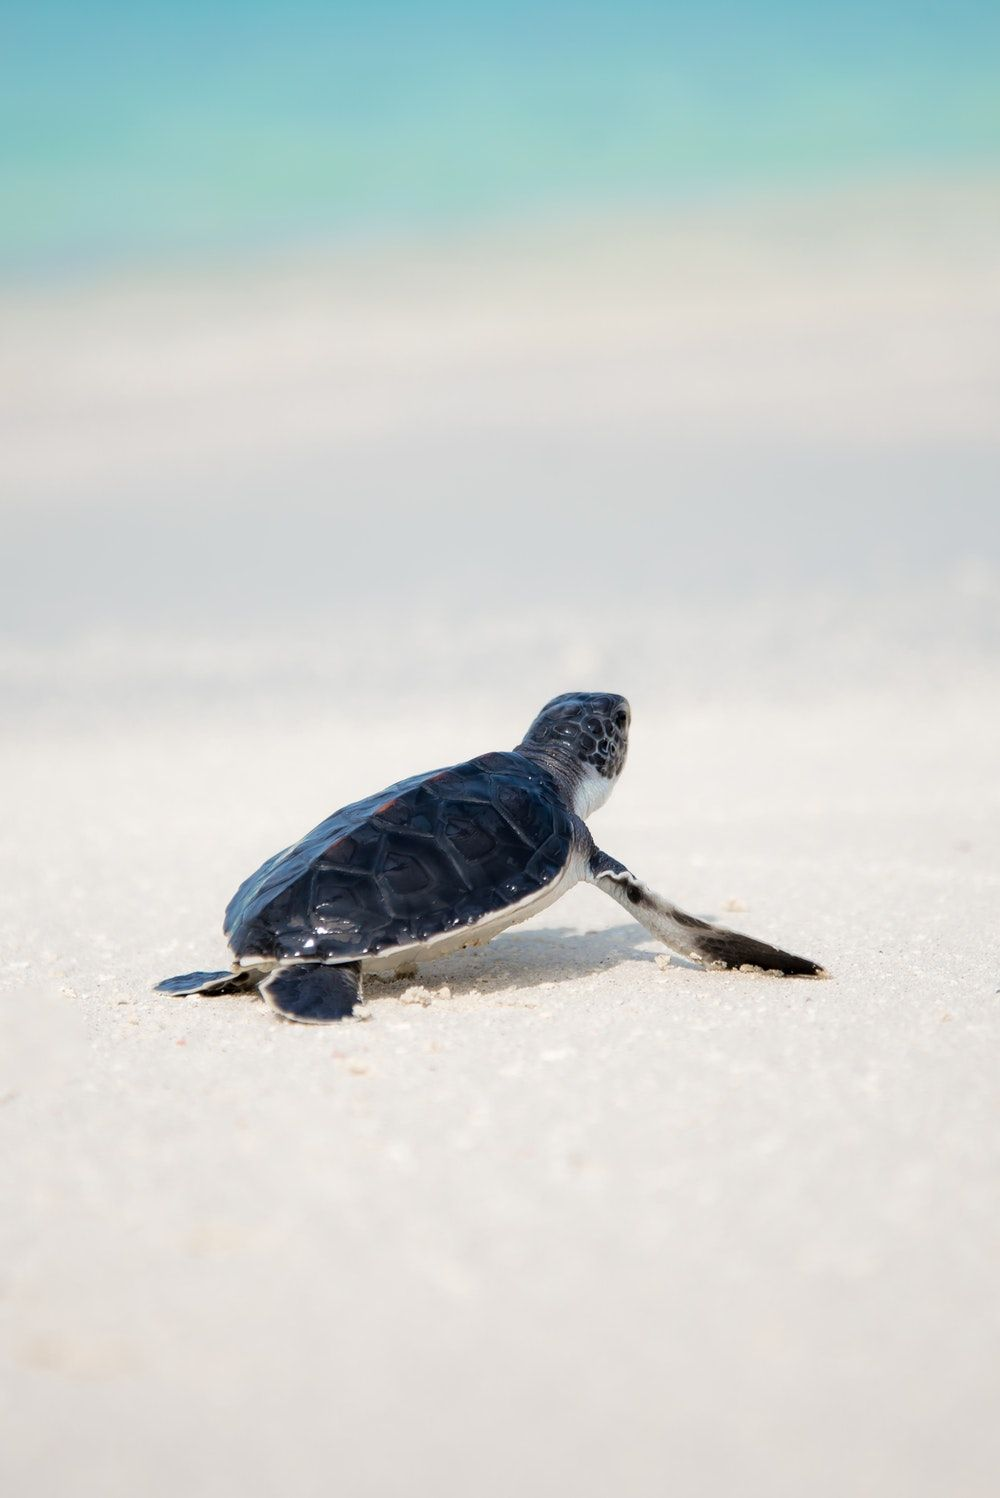 1000x1498 500+ Turtle Pictures | Download Free Images on Unsplash